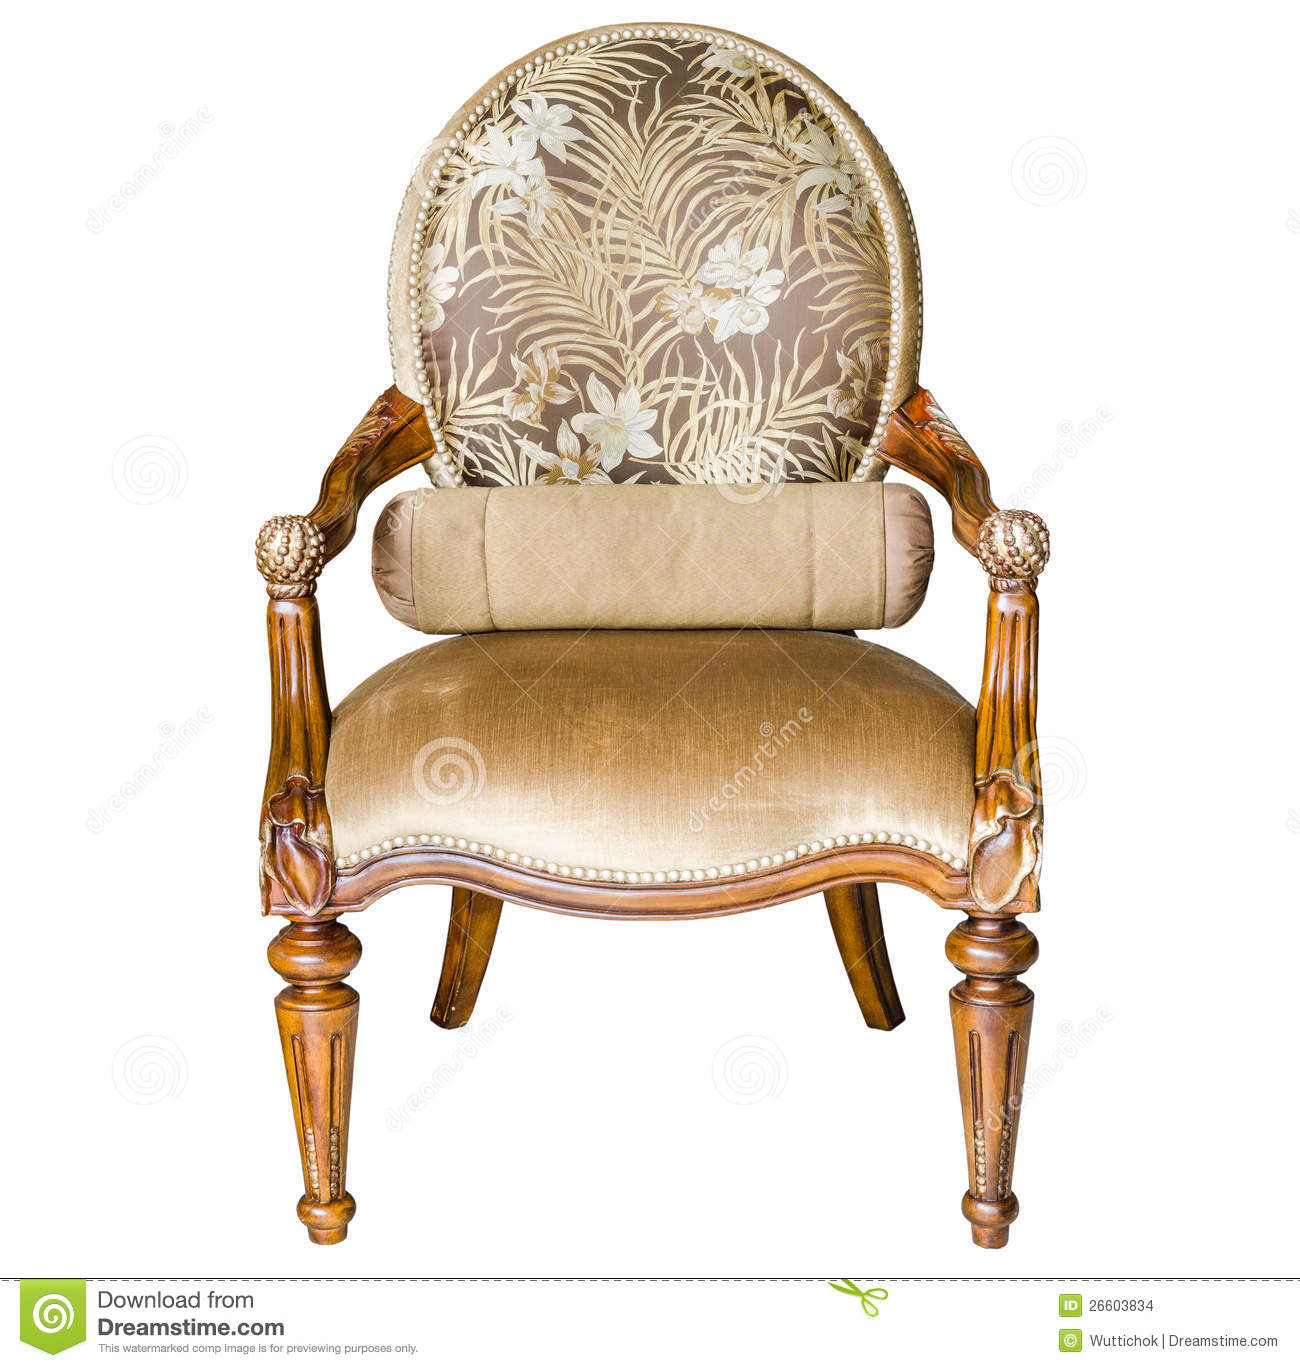 Wooden chairs design classics - Classic Style Vintage Wooden Chair Stock Images Image 26603834